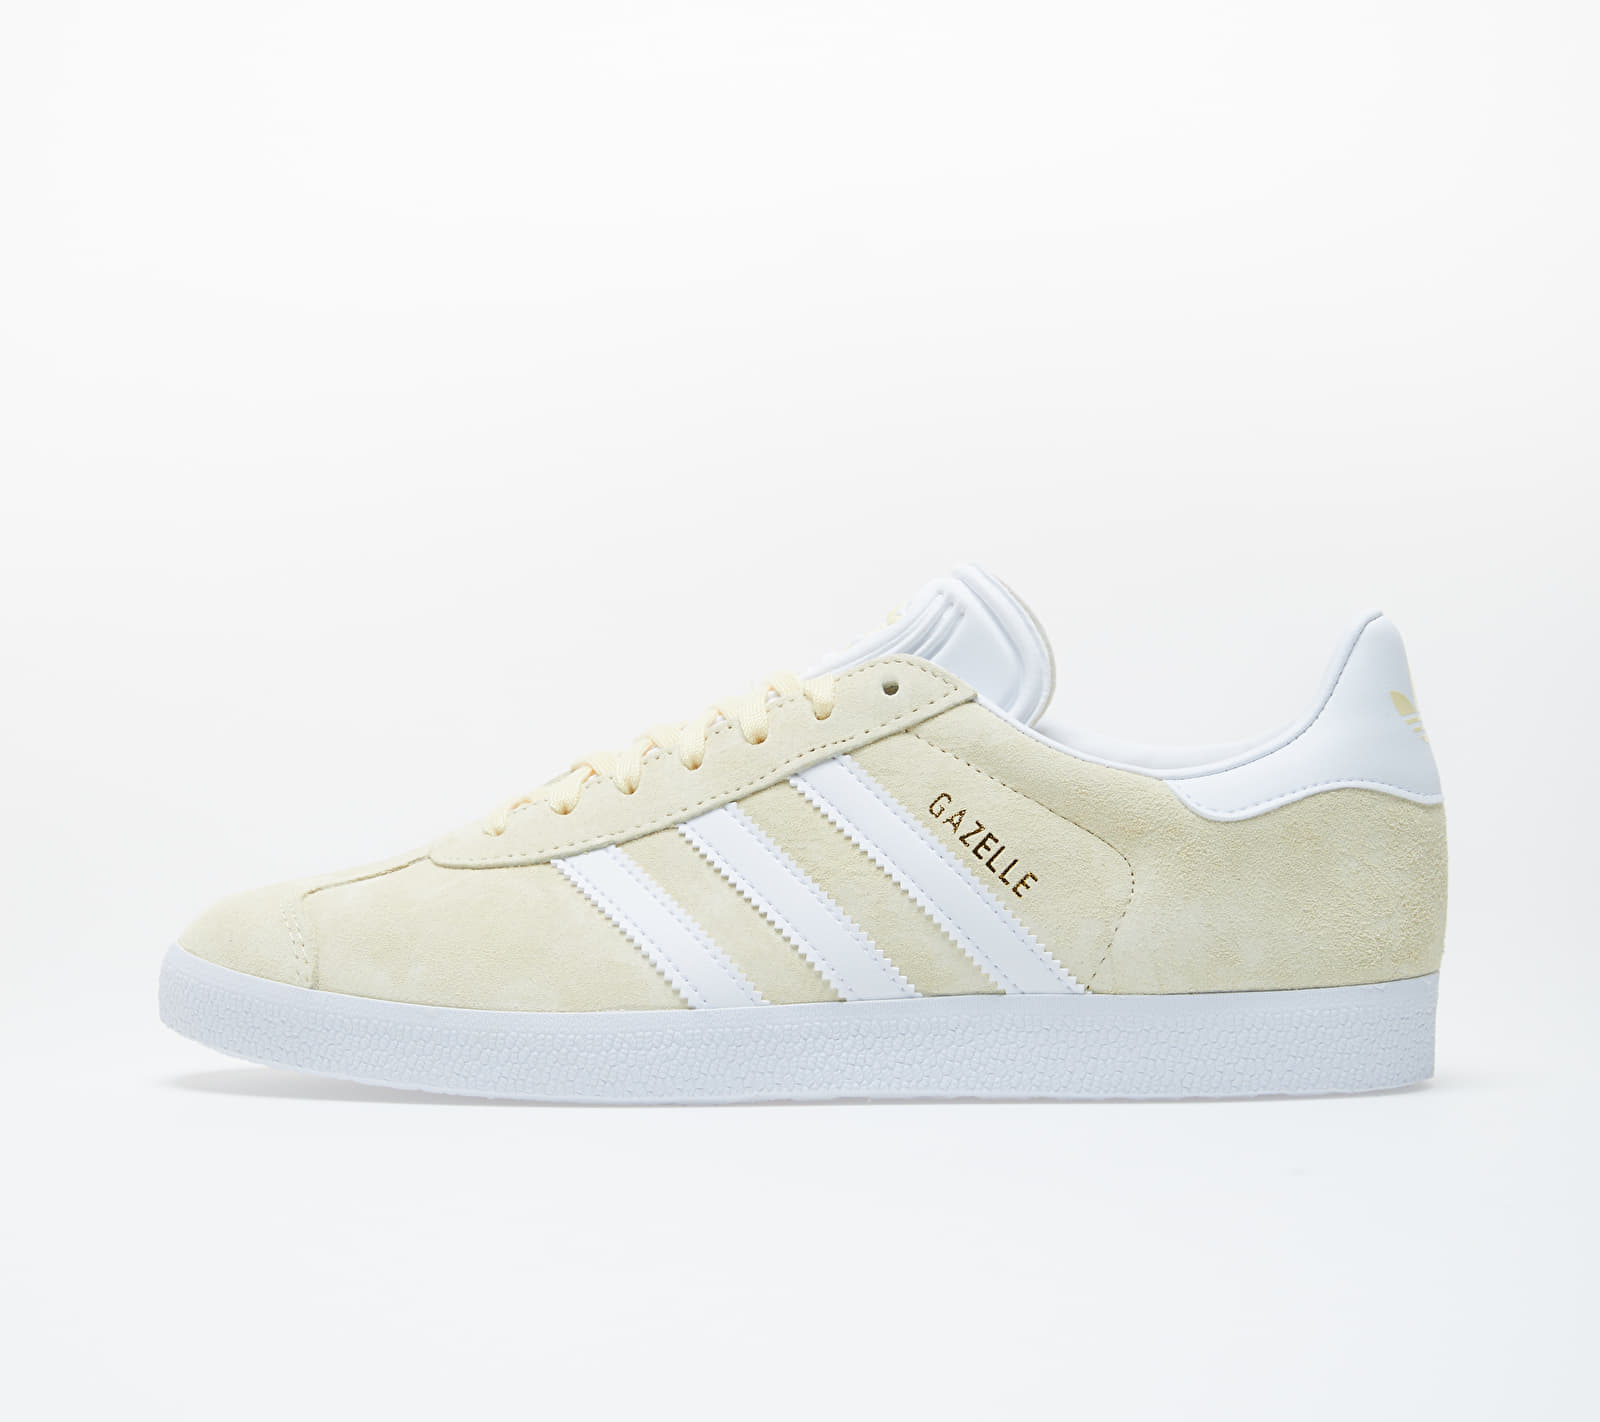 adidas Gazelle Easy Yellow/ Ftw White/ Gold Metalic EUR 44